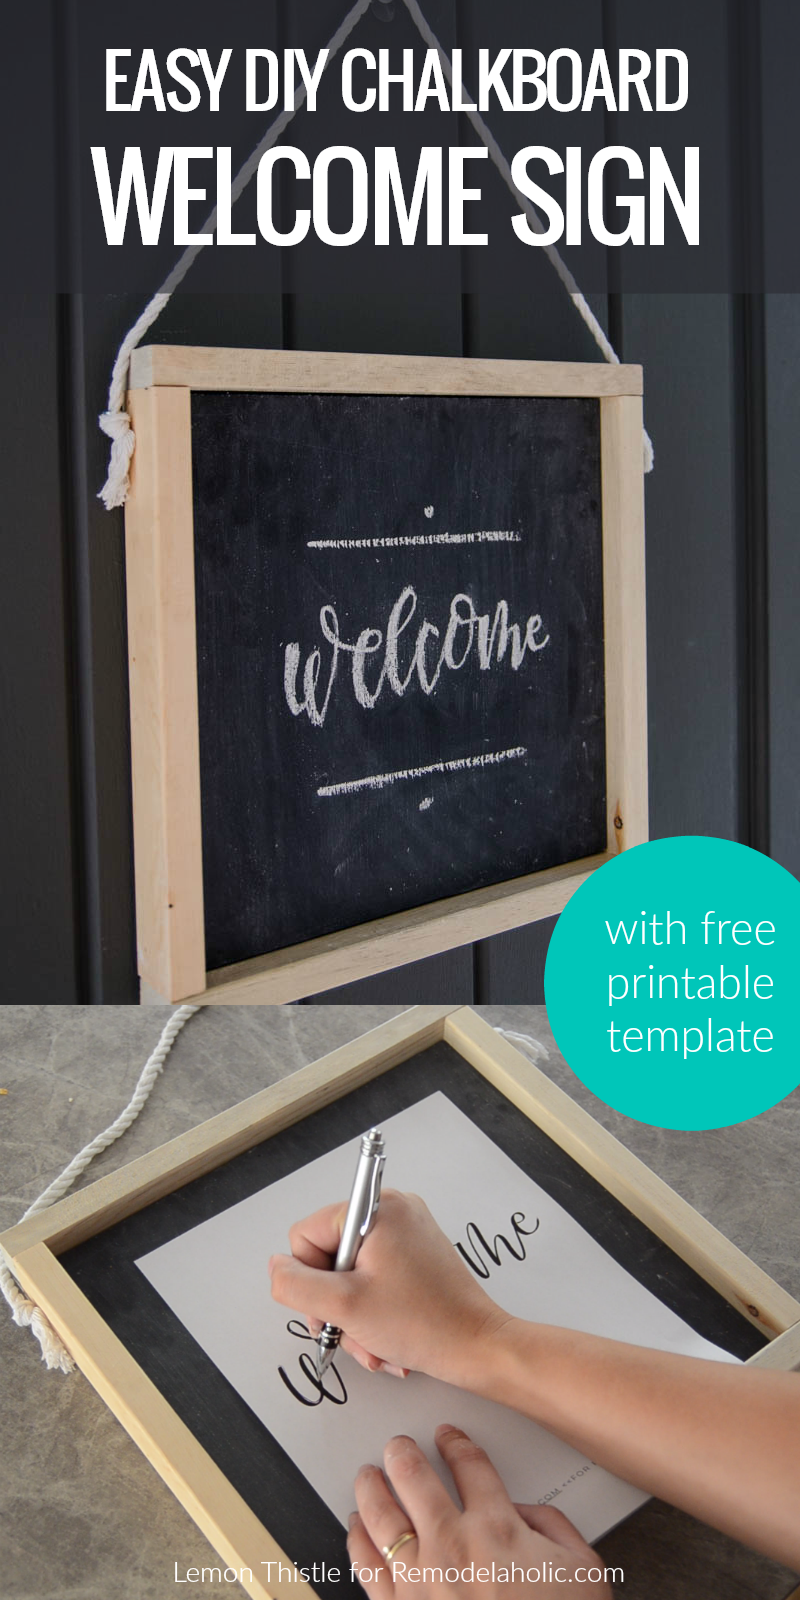 rooster welcome sign cut out template free dxf files free cad